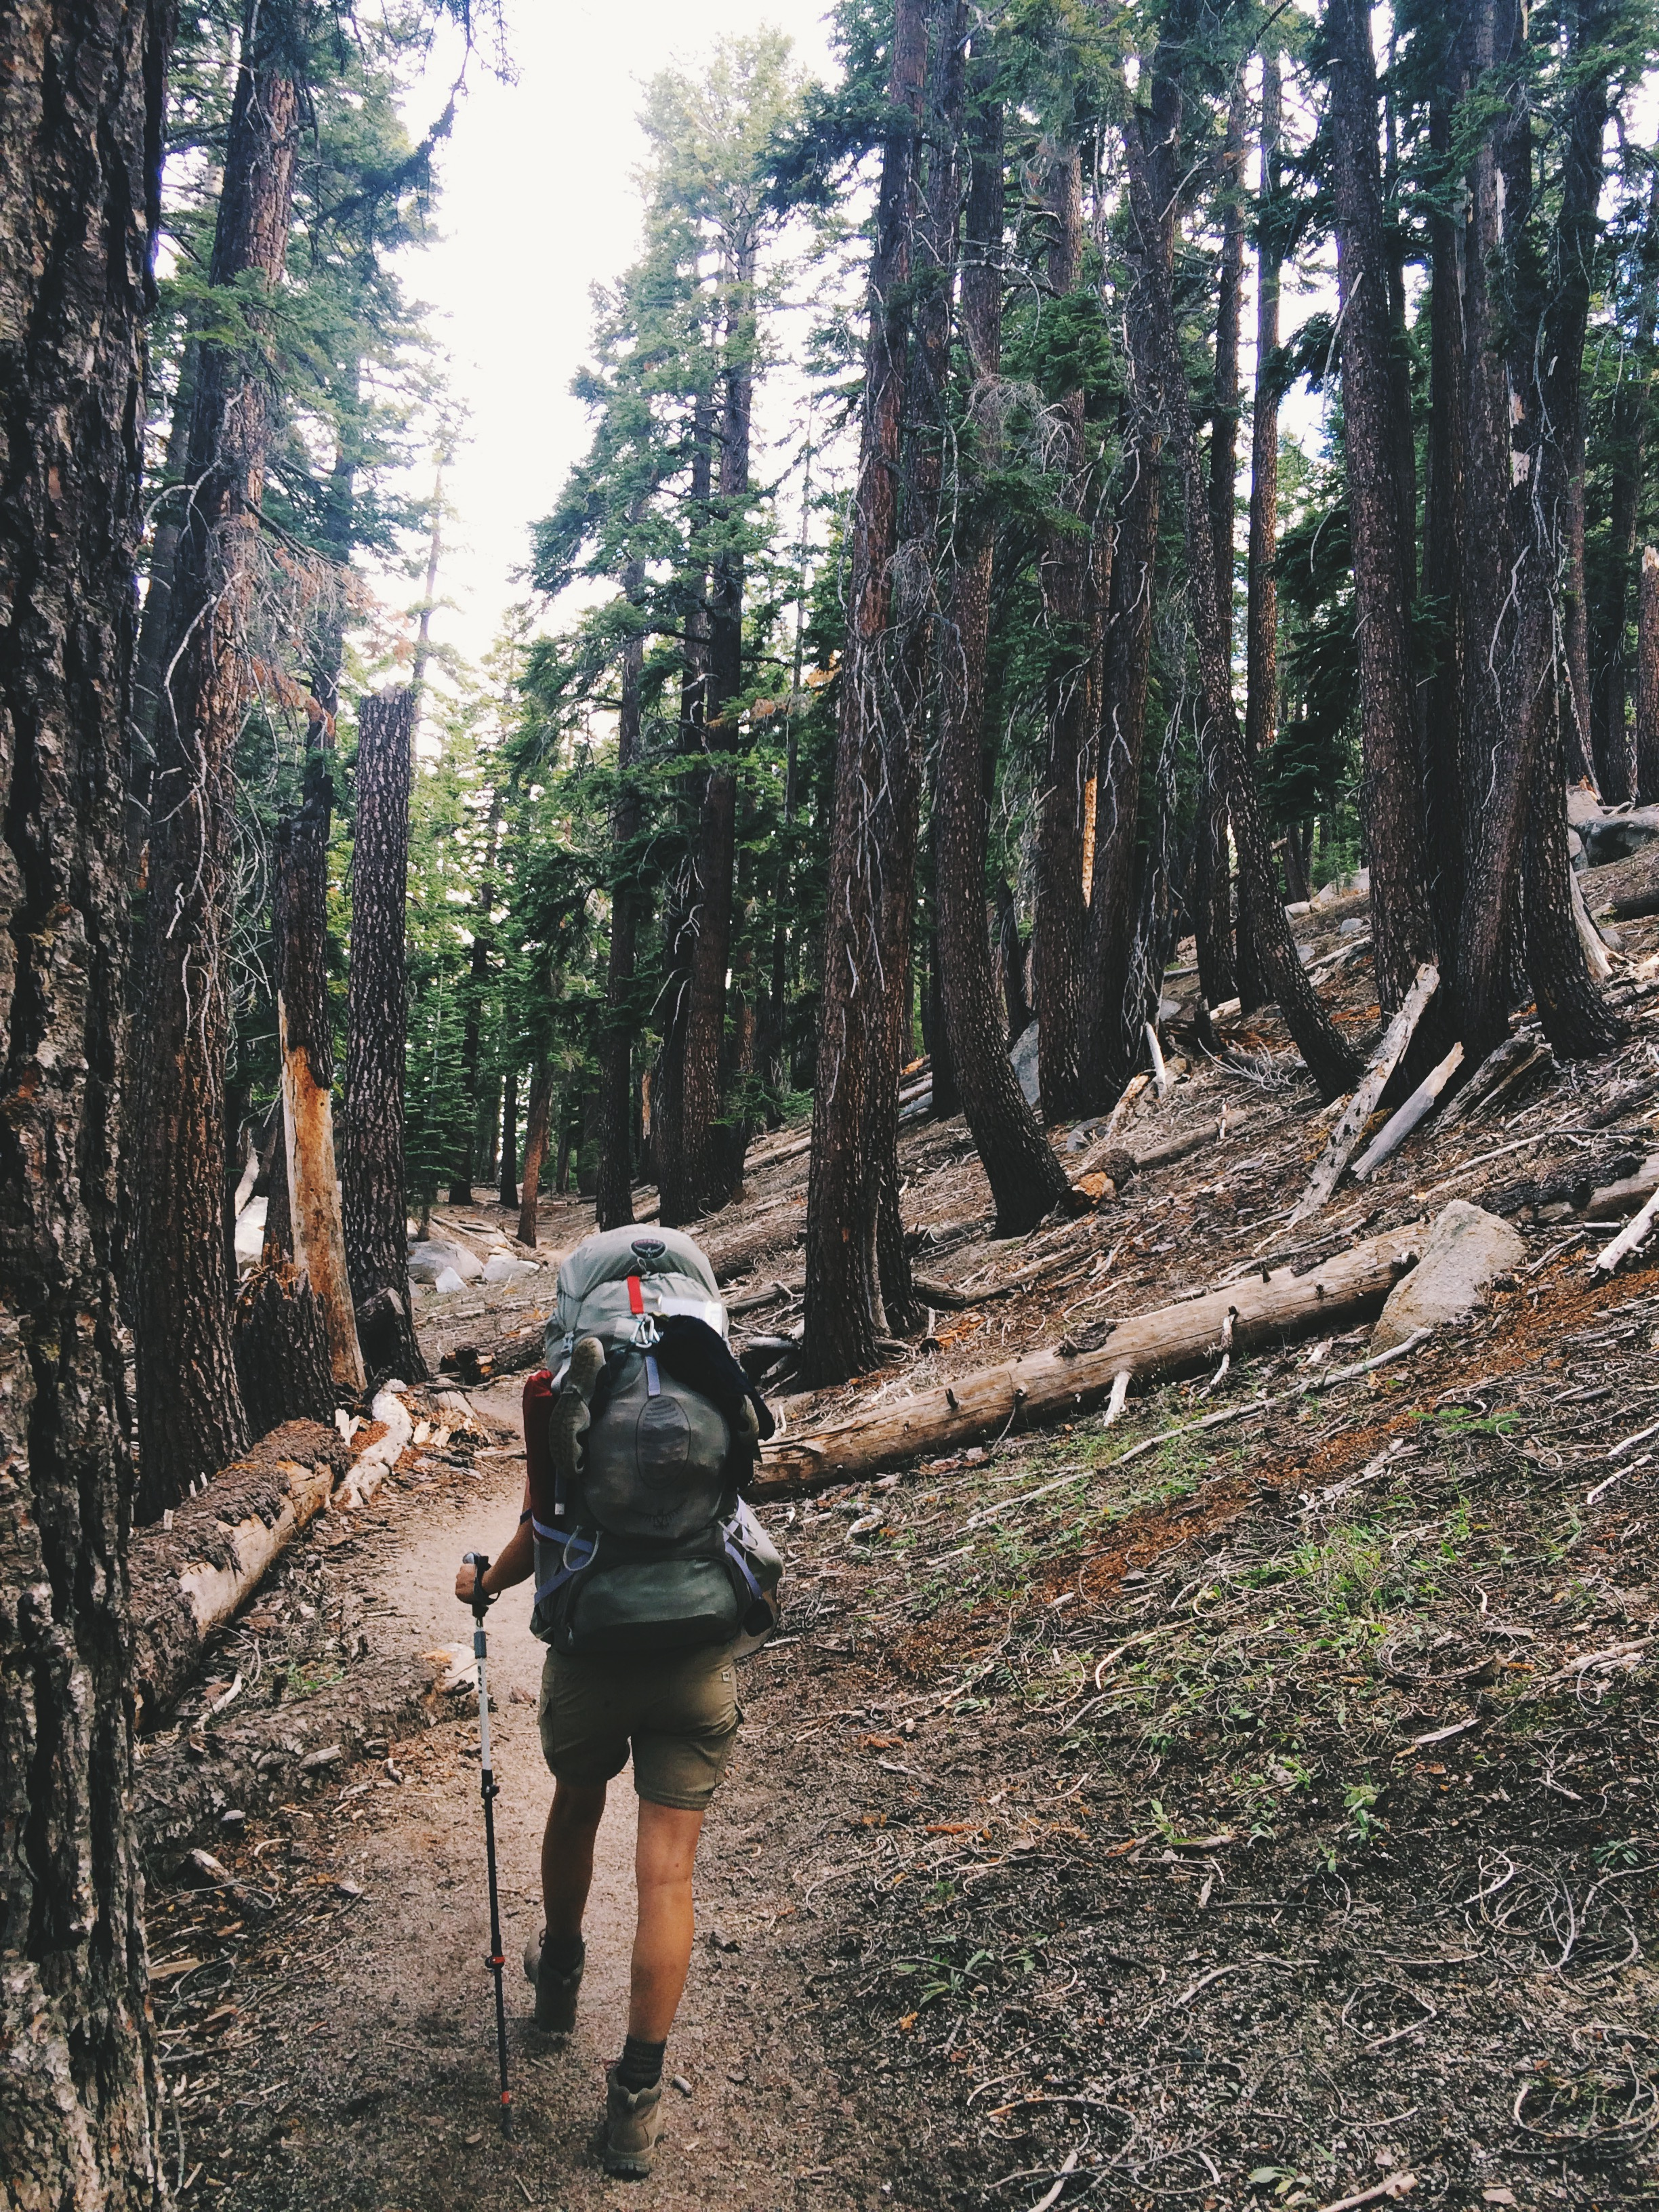 Hiking through lodgepole pine forest.